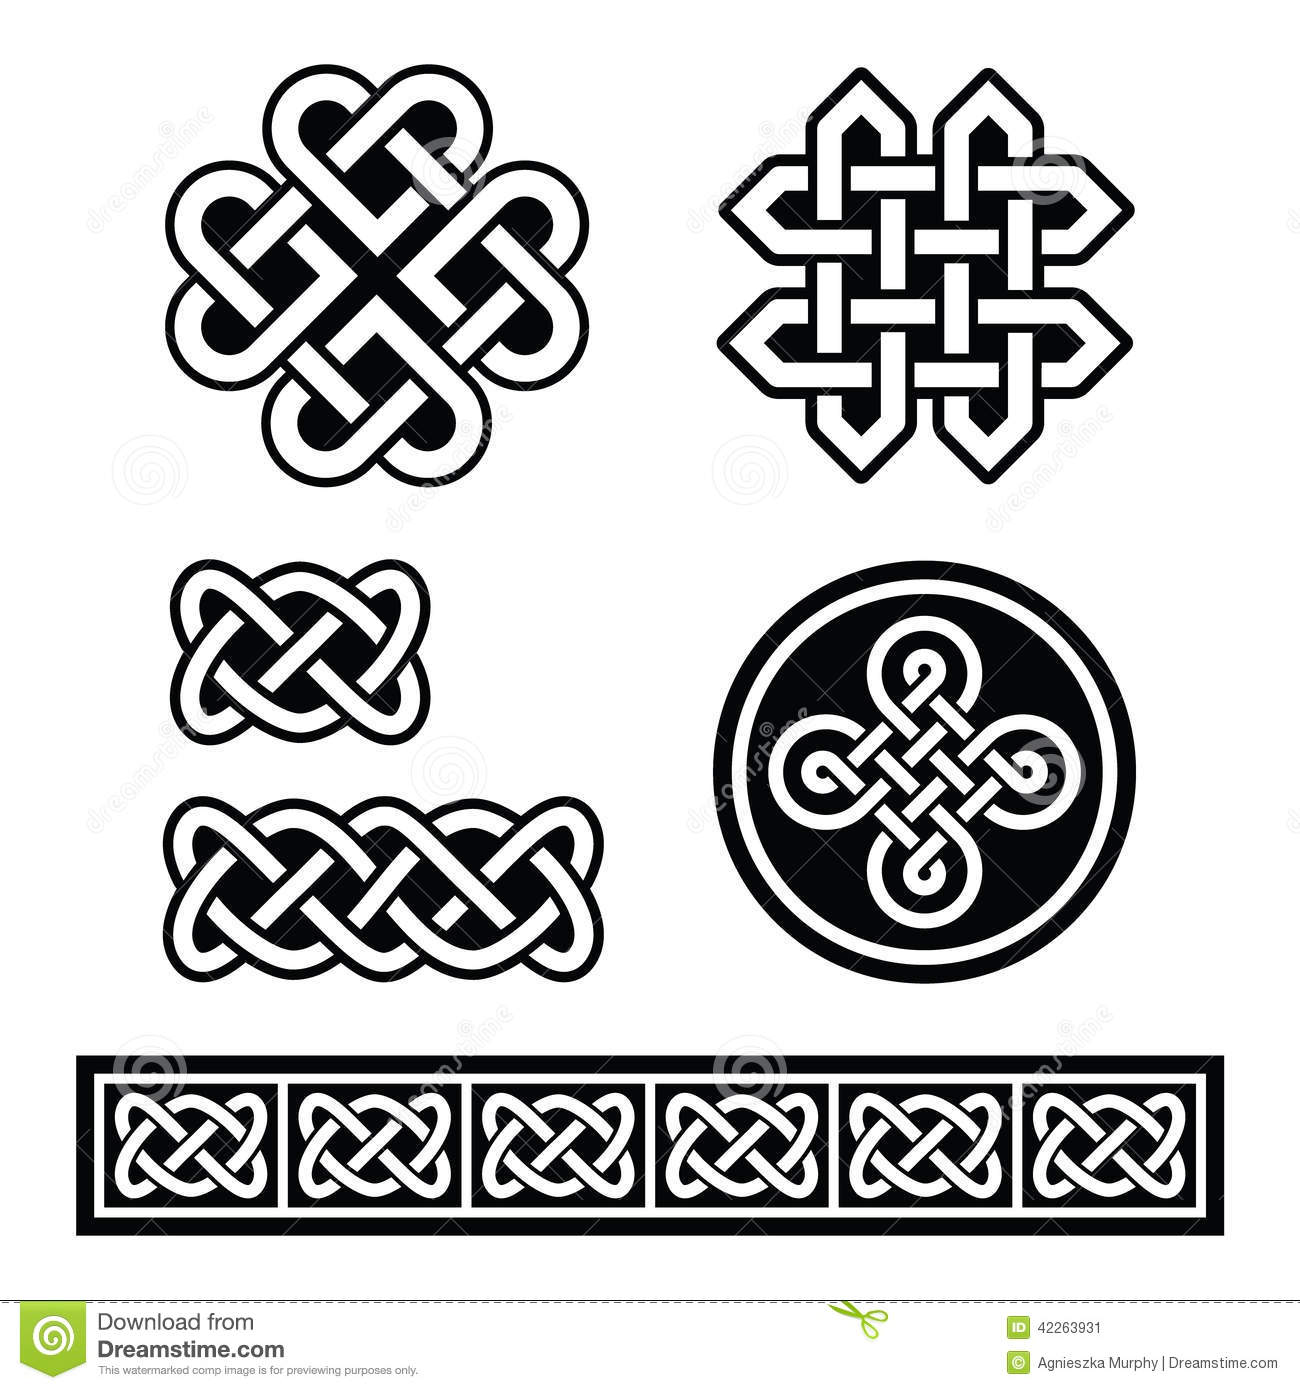 Scottish Gaelic Symbols And Meanings